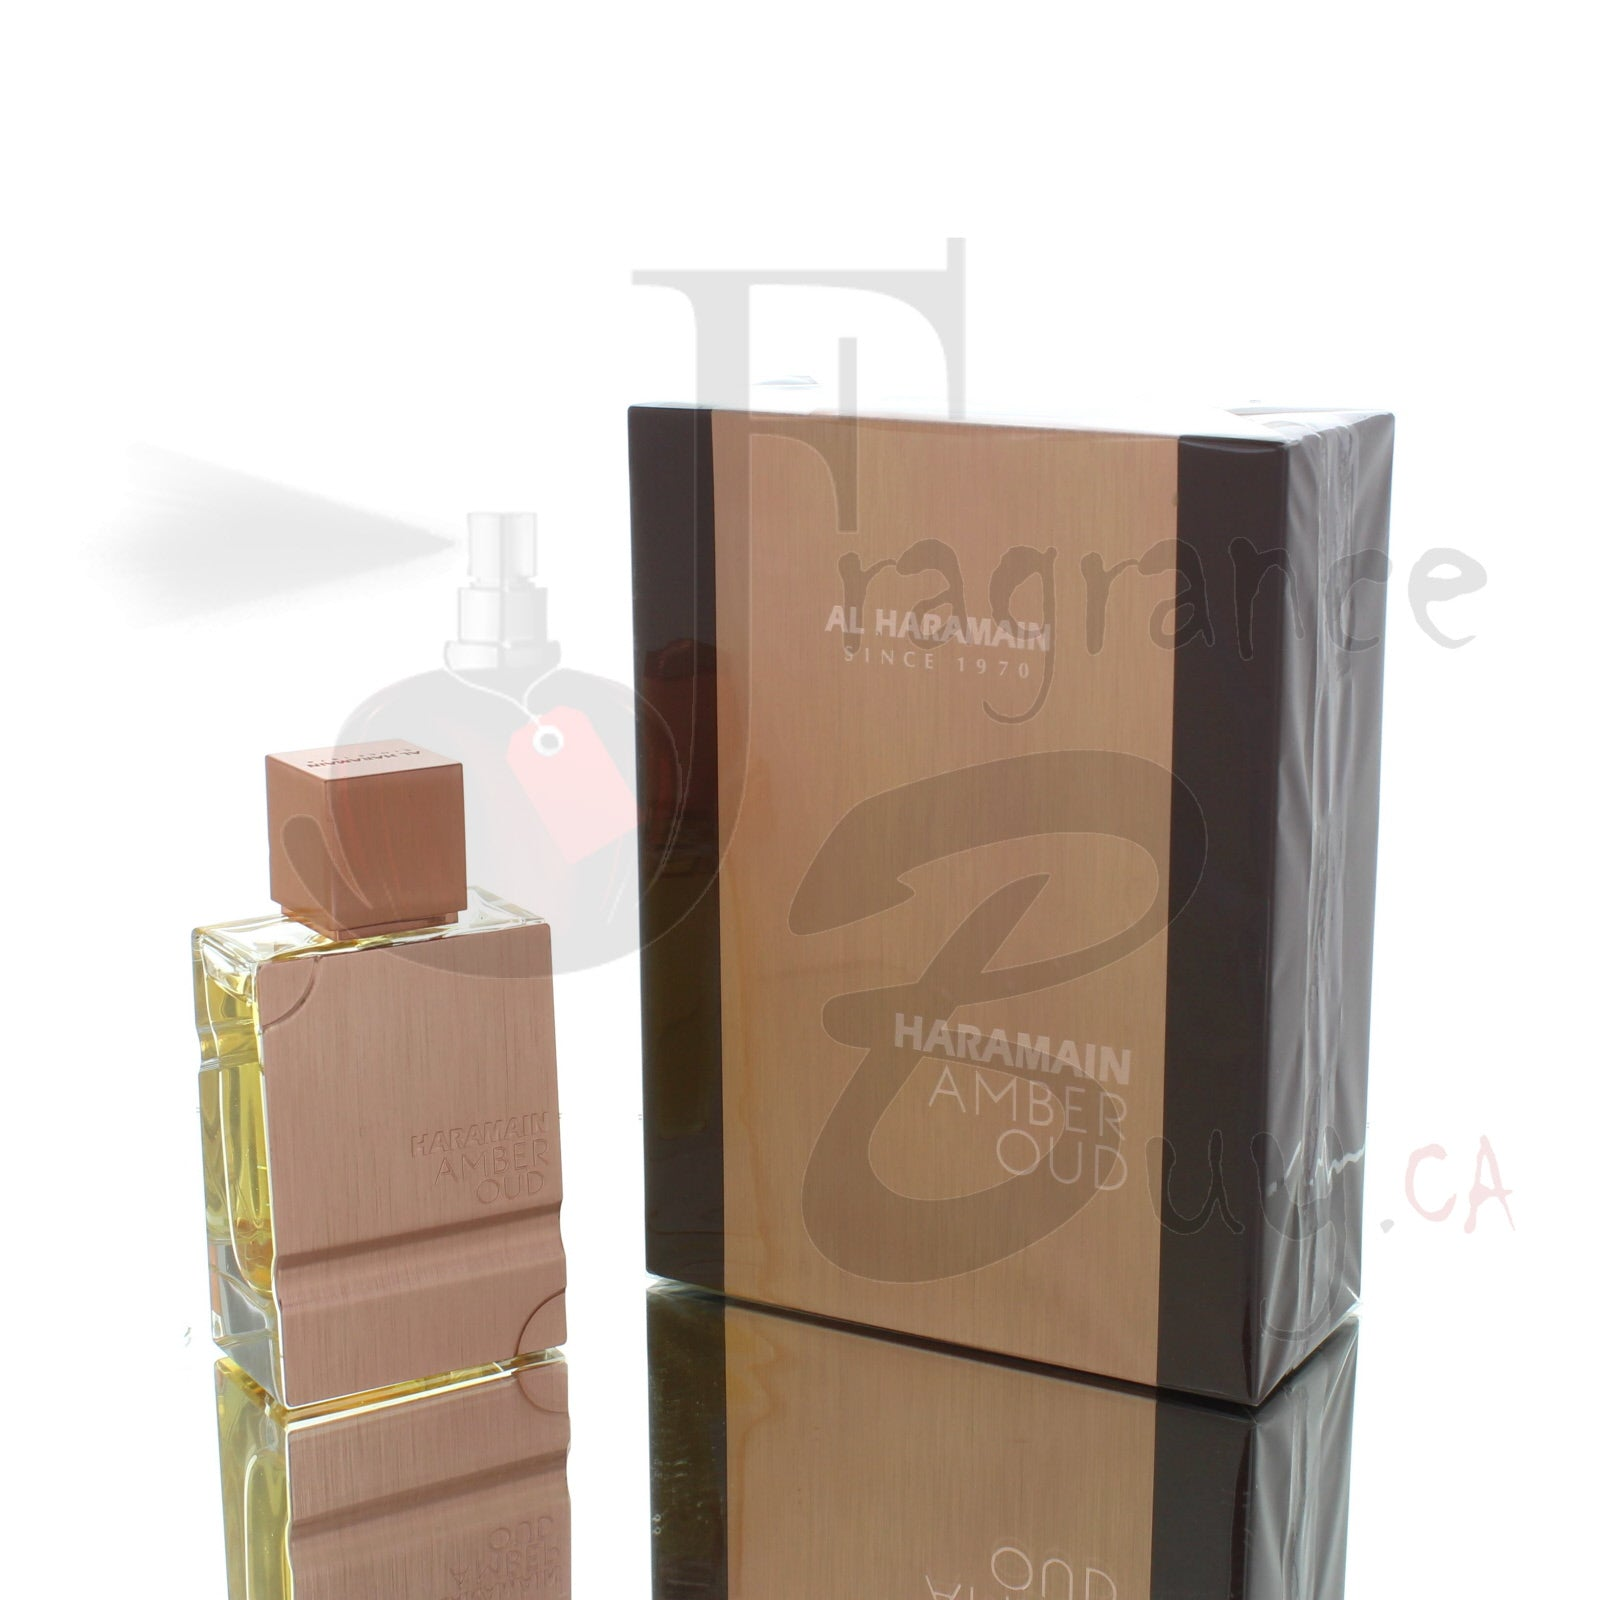 Al Haramain Amber Oud (Tobacco Vanille Clone) For Man